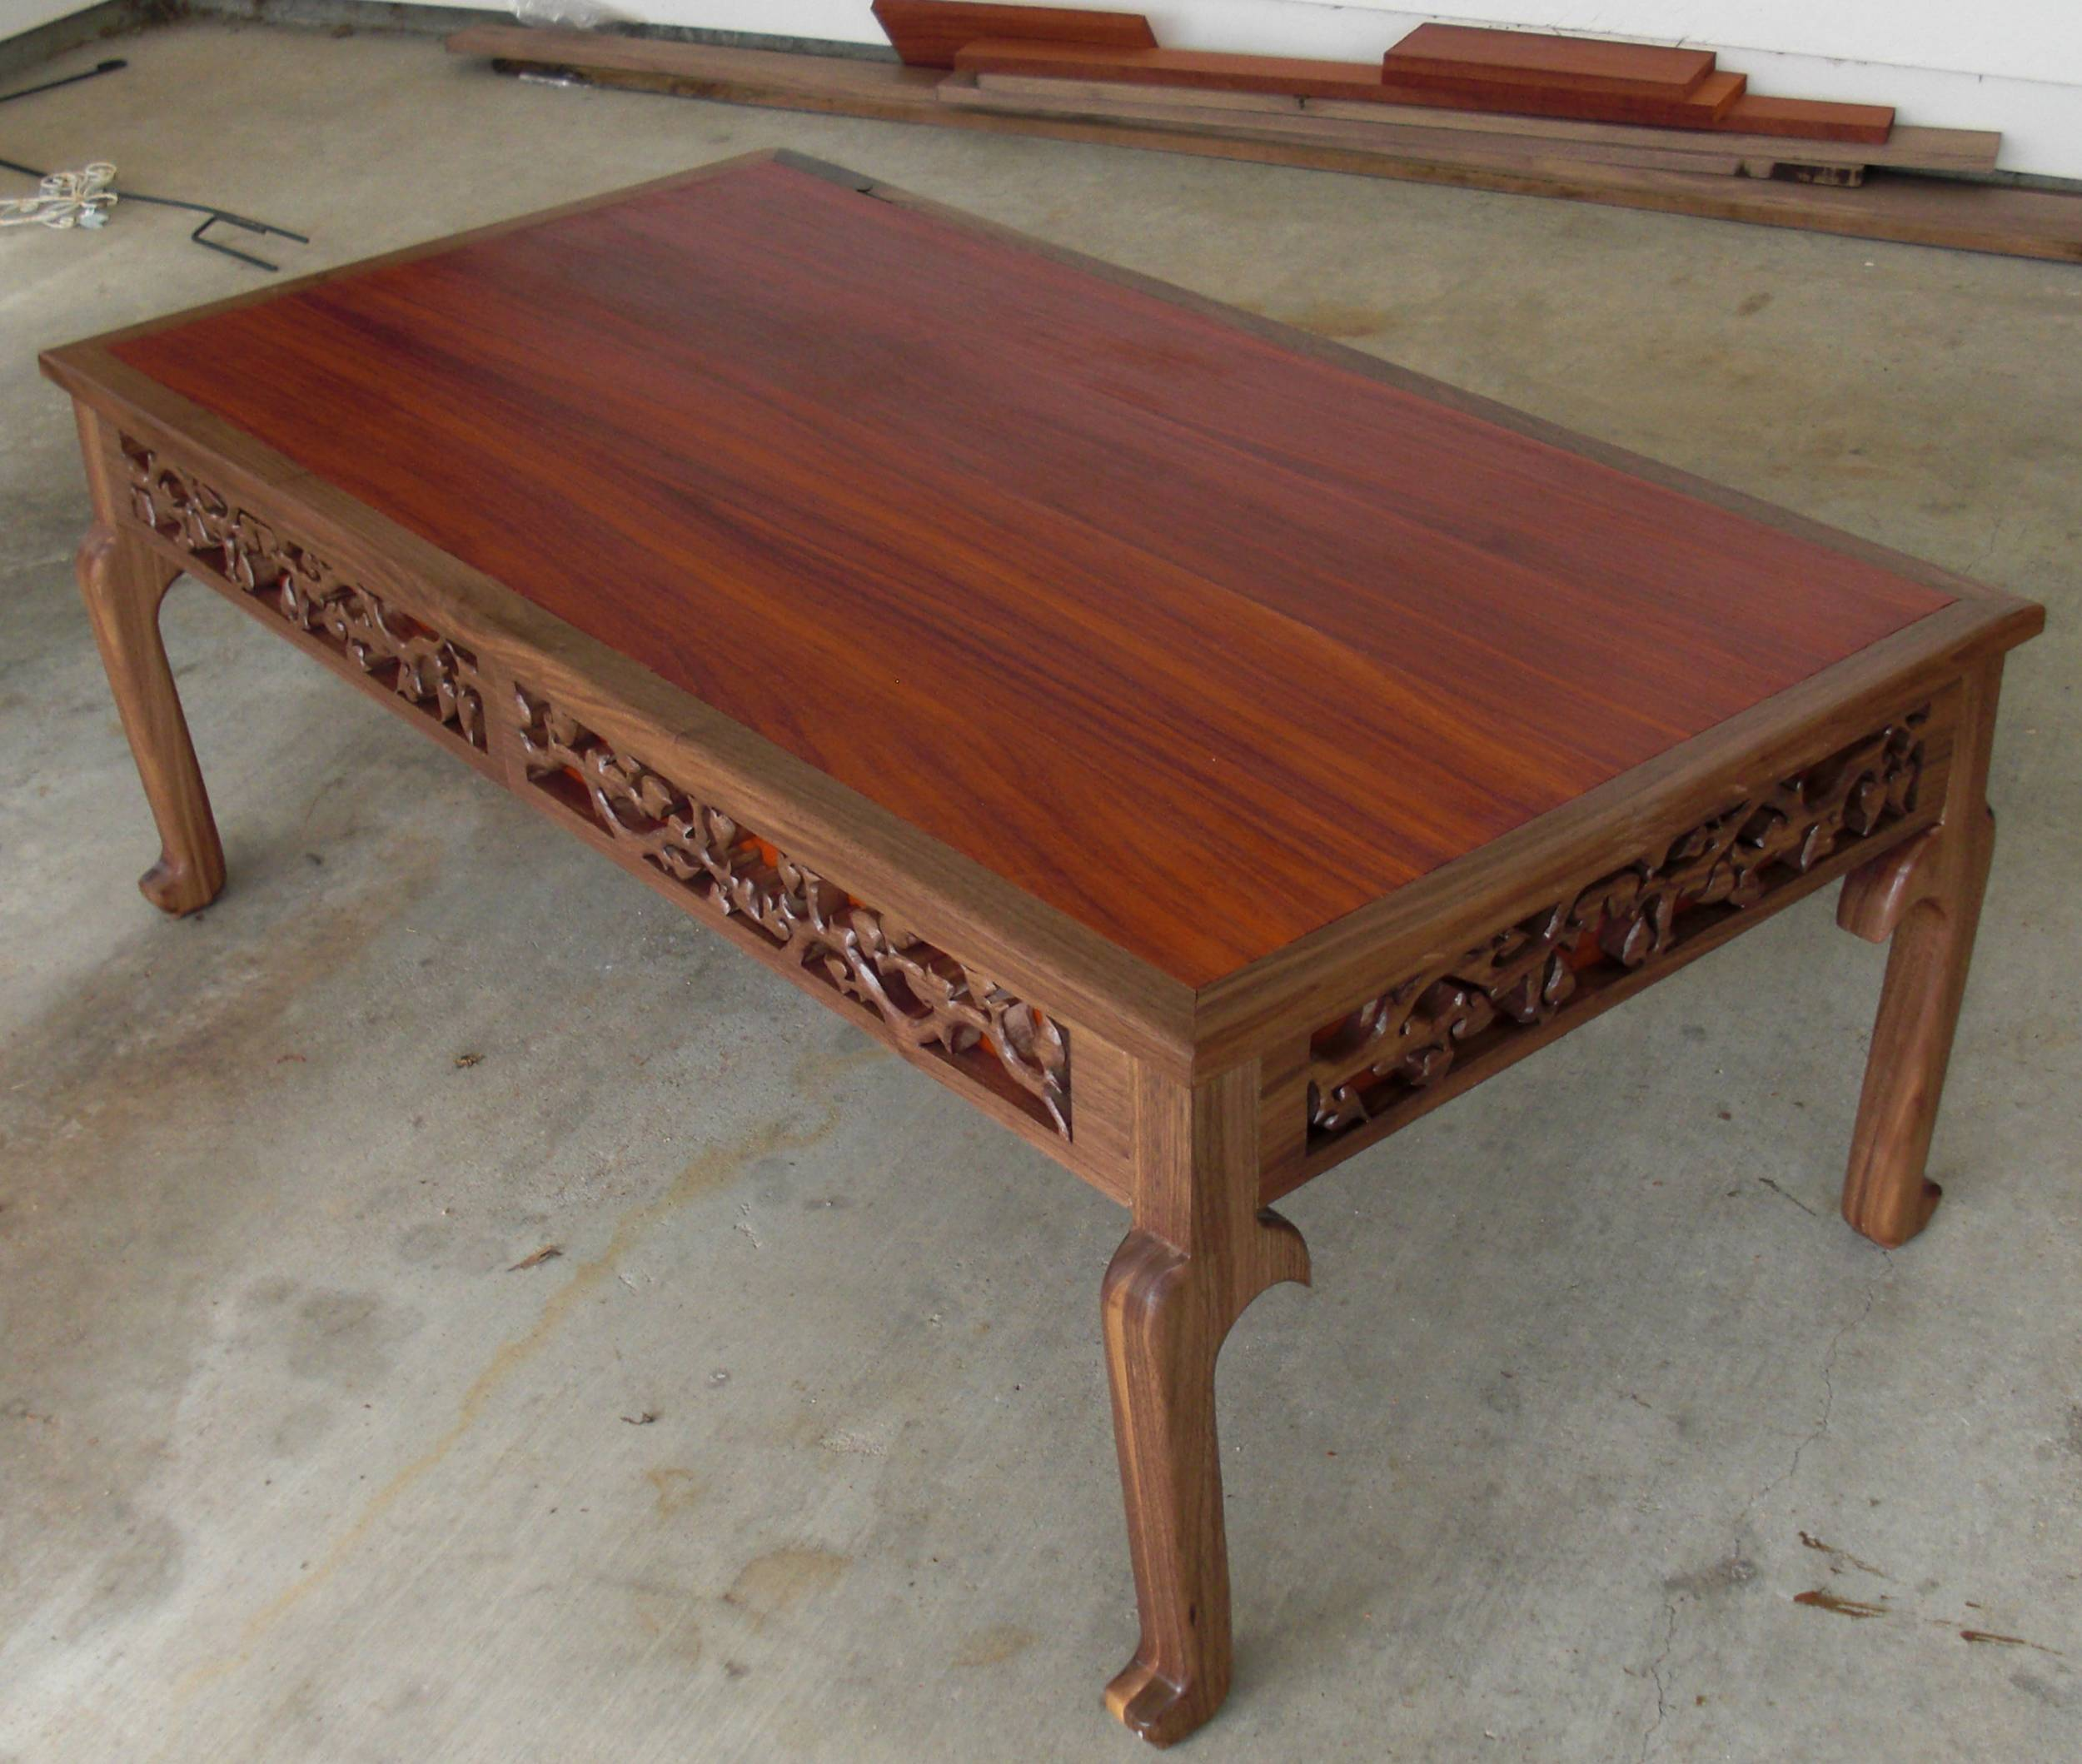 Fine Woodworking Contest Build a Small Table for a Chance to Win